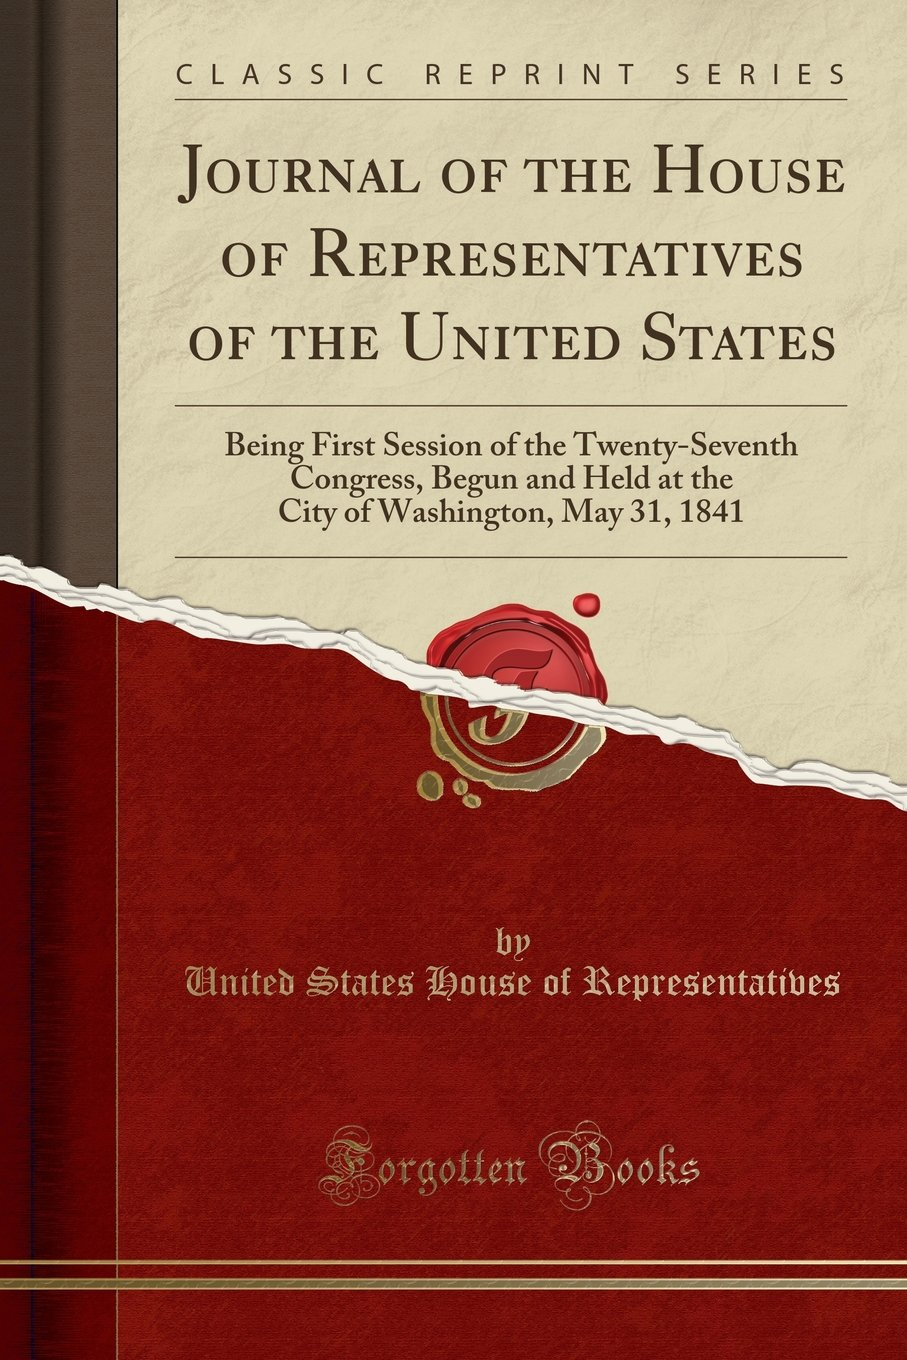 Journal of the House of Representatives of the United States: Being First Session of the Twenty-Seventh Congress, Begun and Held at the City of Washington, May 31, 1841 (Classic Reprint) PDF